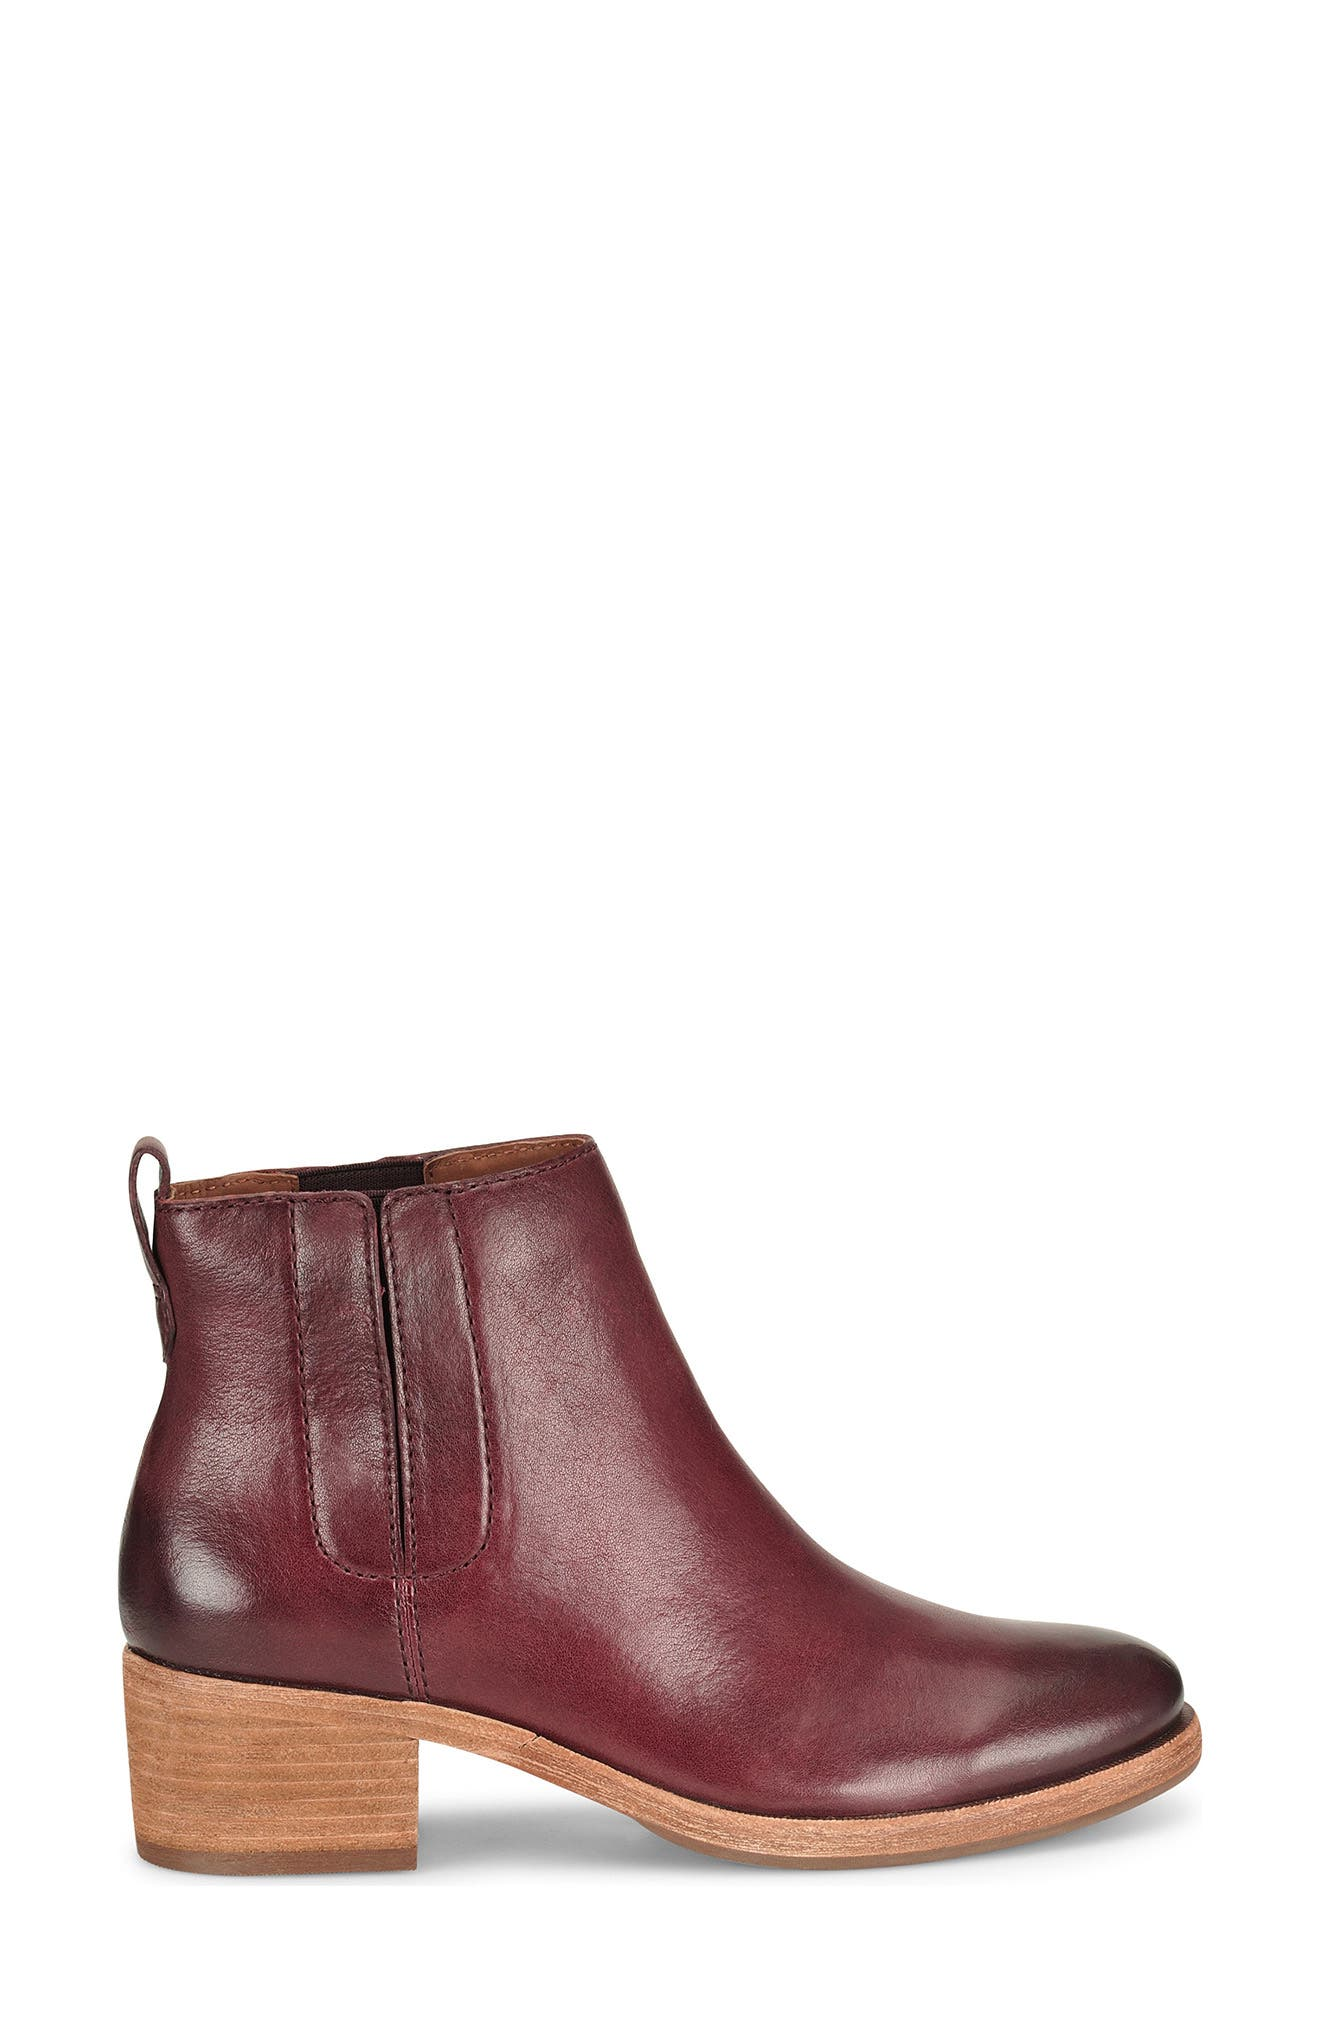 Mindo Chelsea Bootie,                             Alternate thumbnail 3, color,                             Burgundy Leather